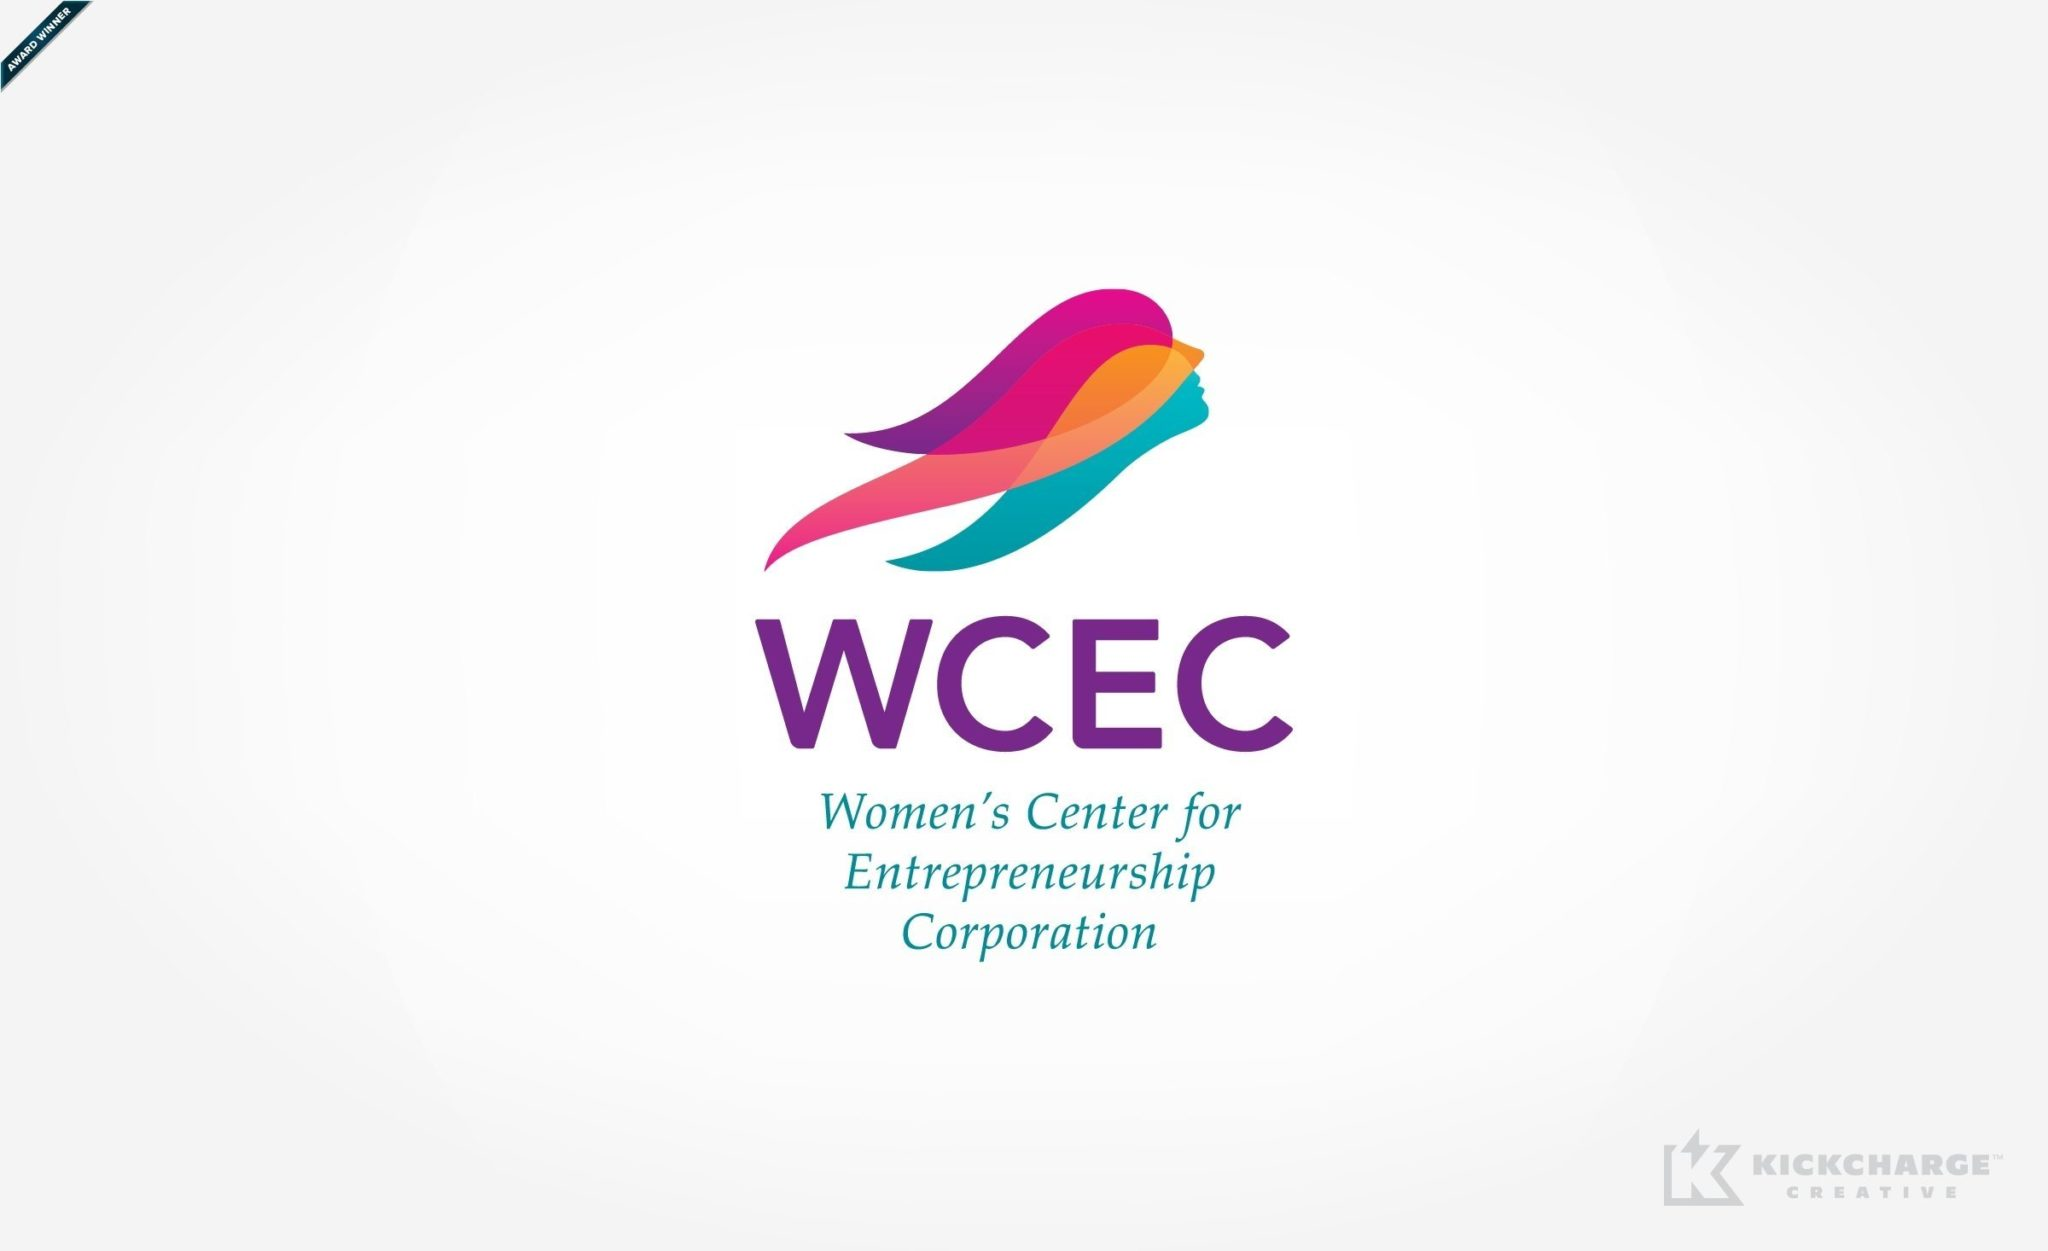 Women's Center for Entrepreneurship Corp.